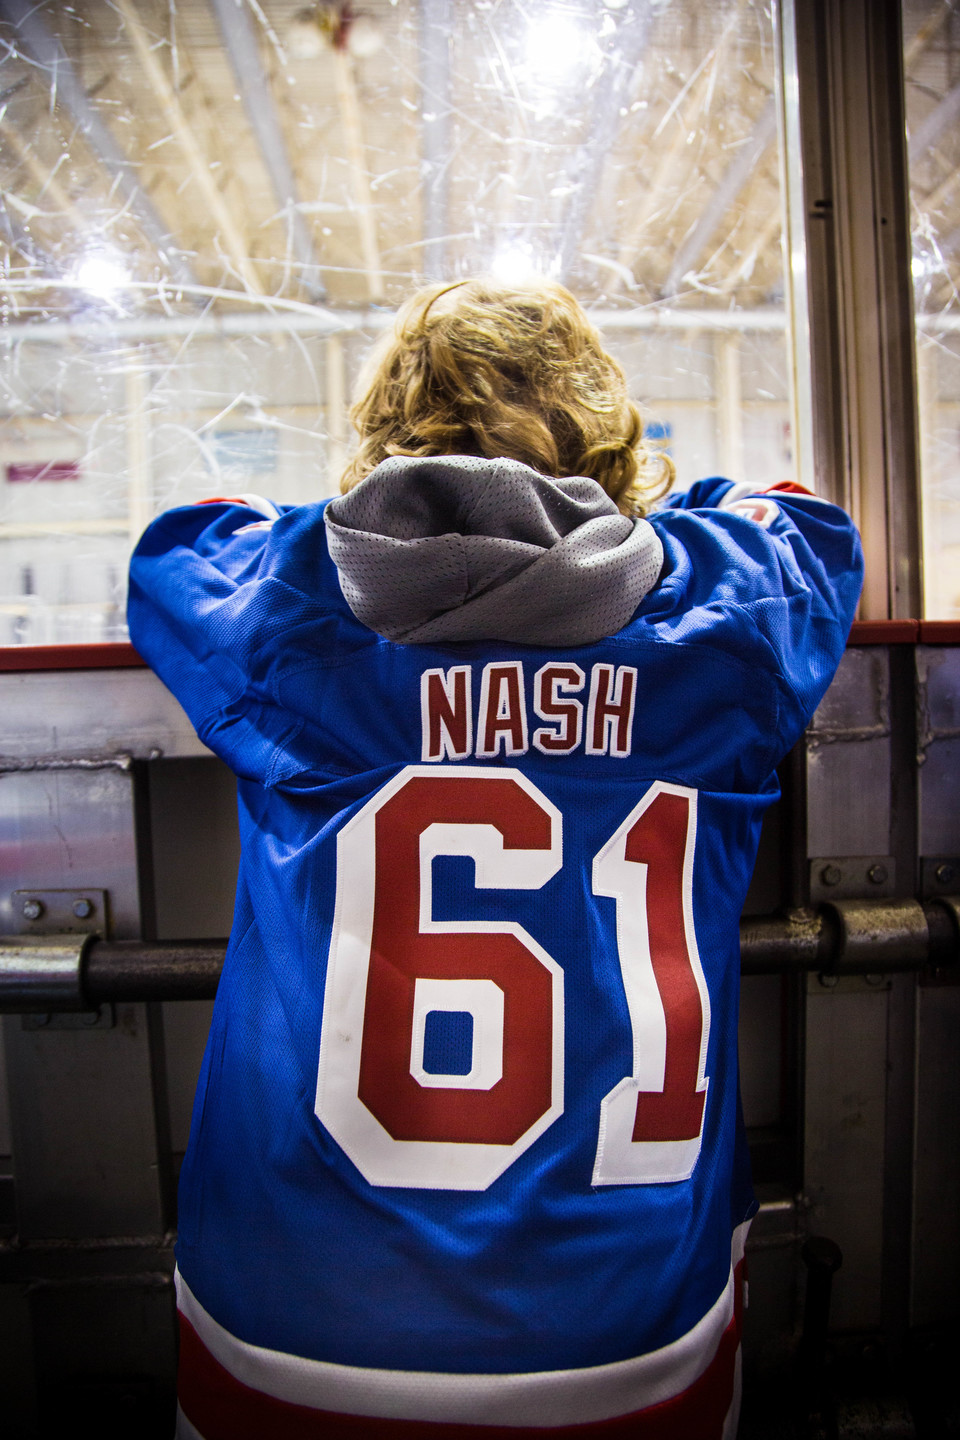 """Close up of the back of boy's hockey jersey which says """"NASH"""""""